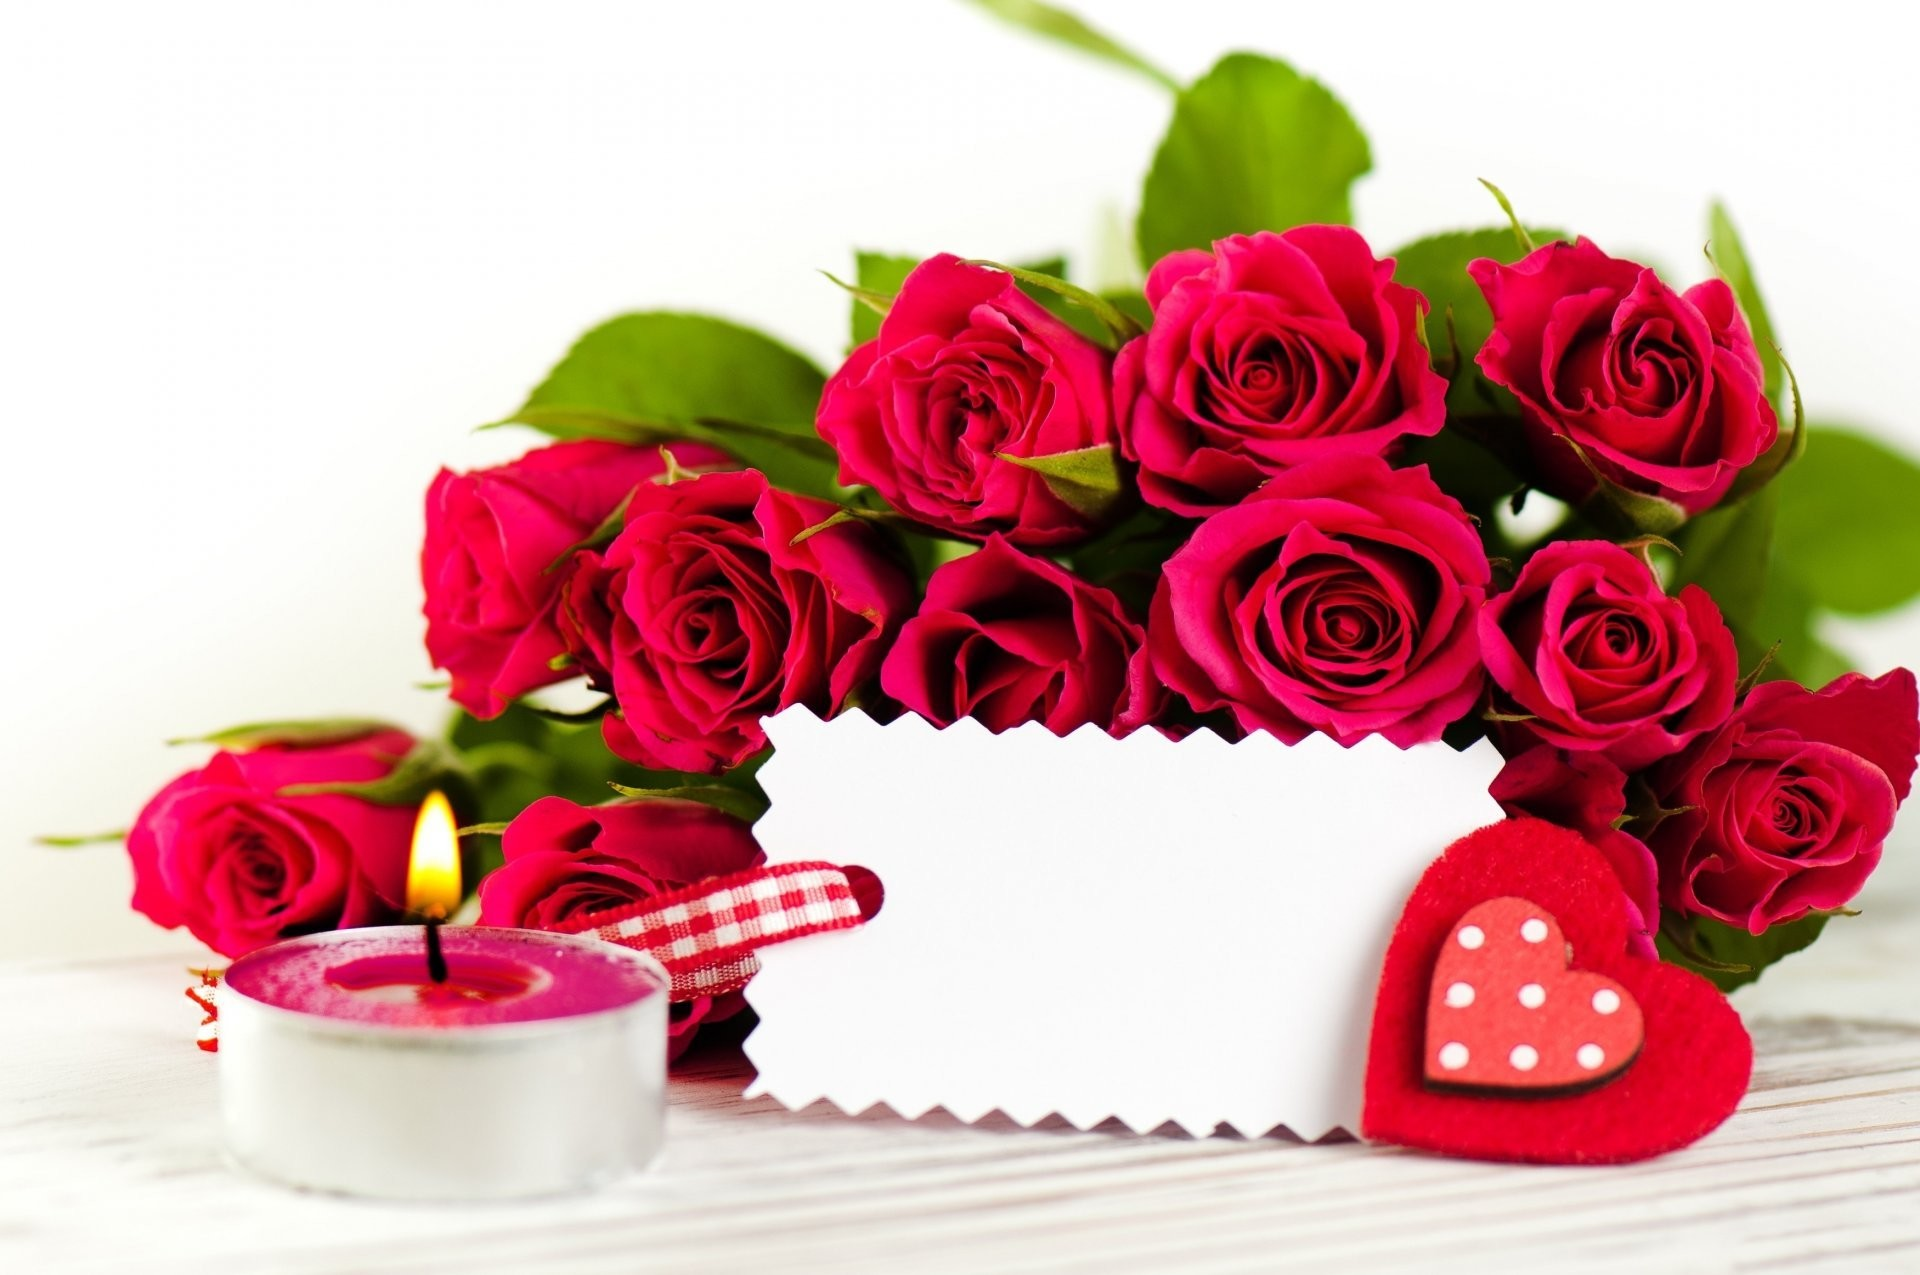 nature flowers flower red roses rose bouquet amazing beautiful heart love